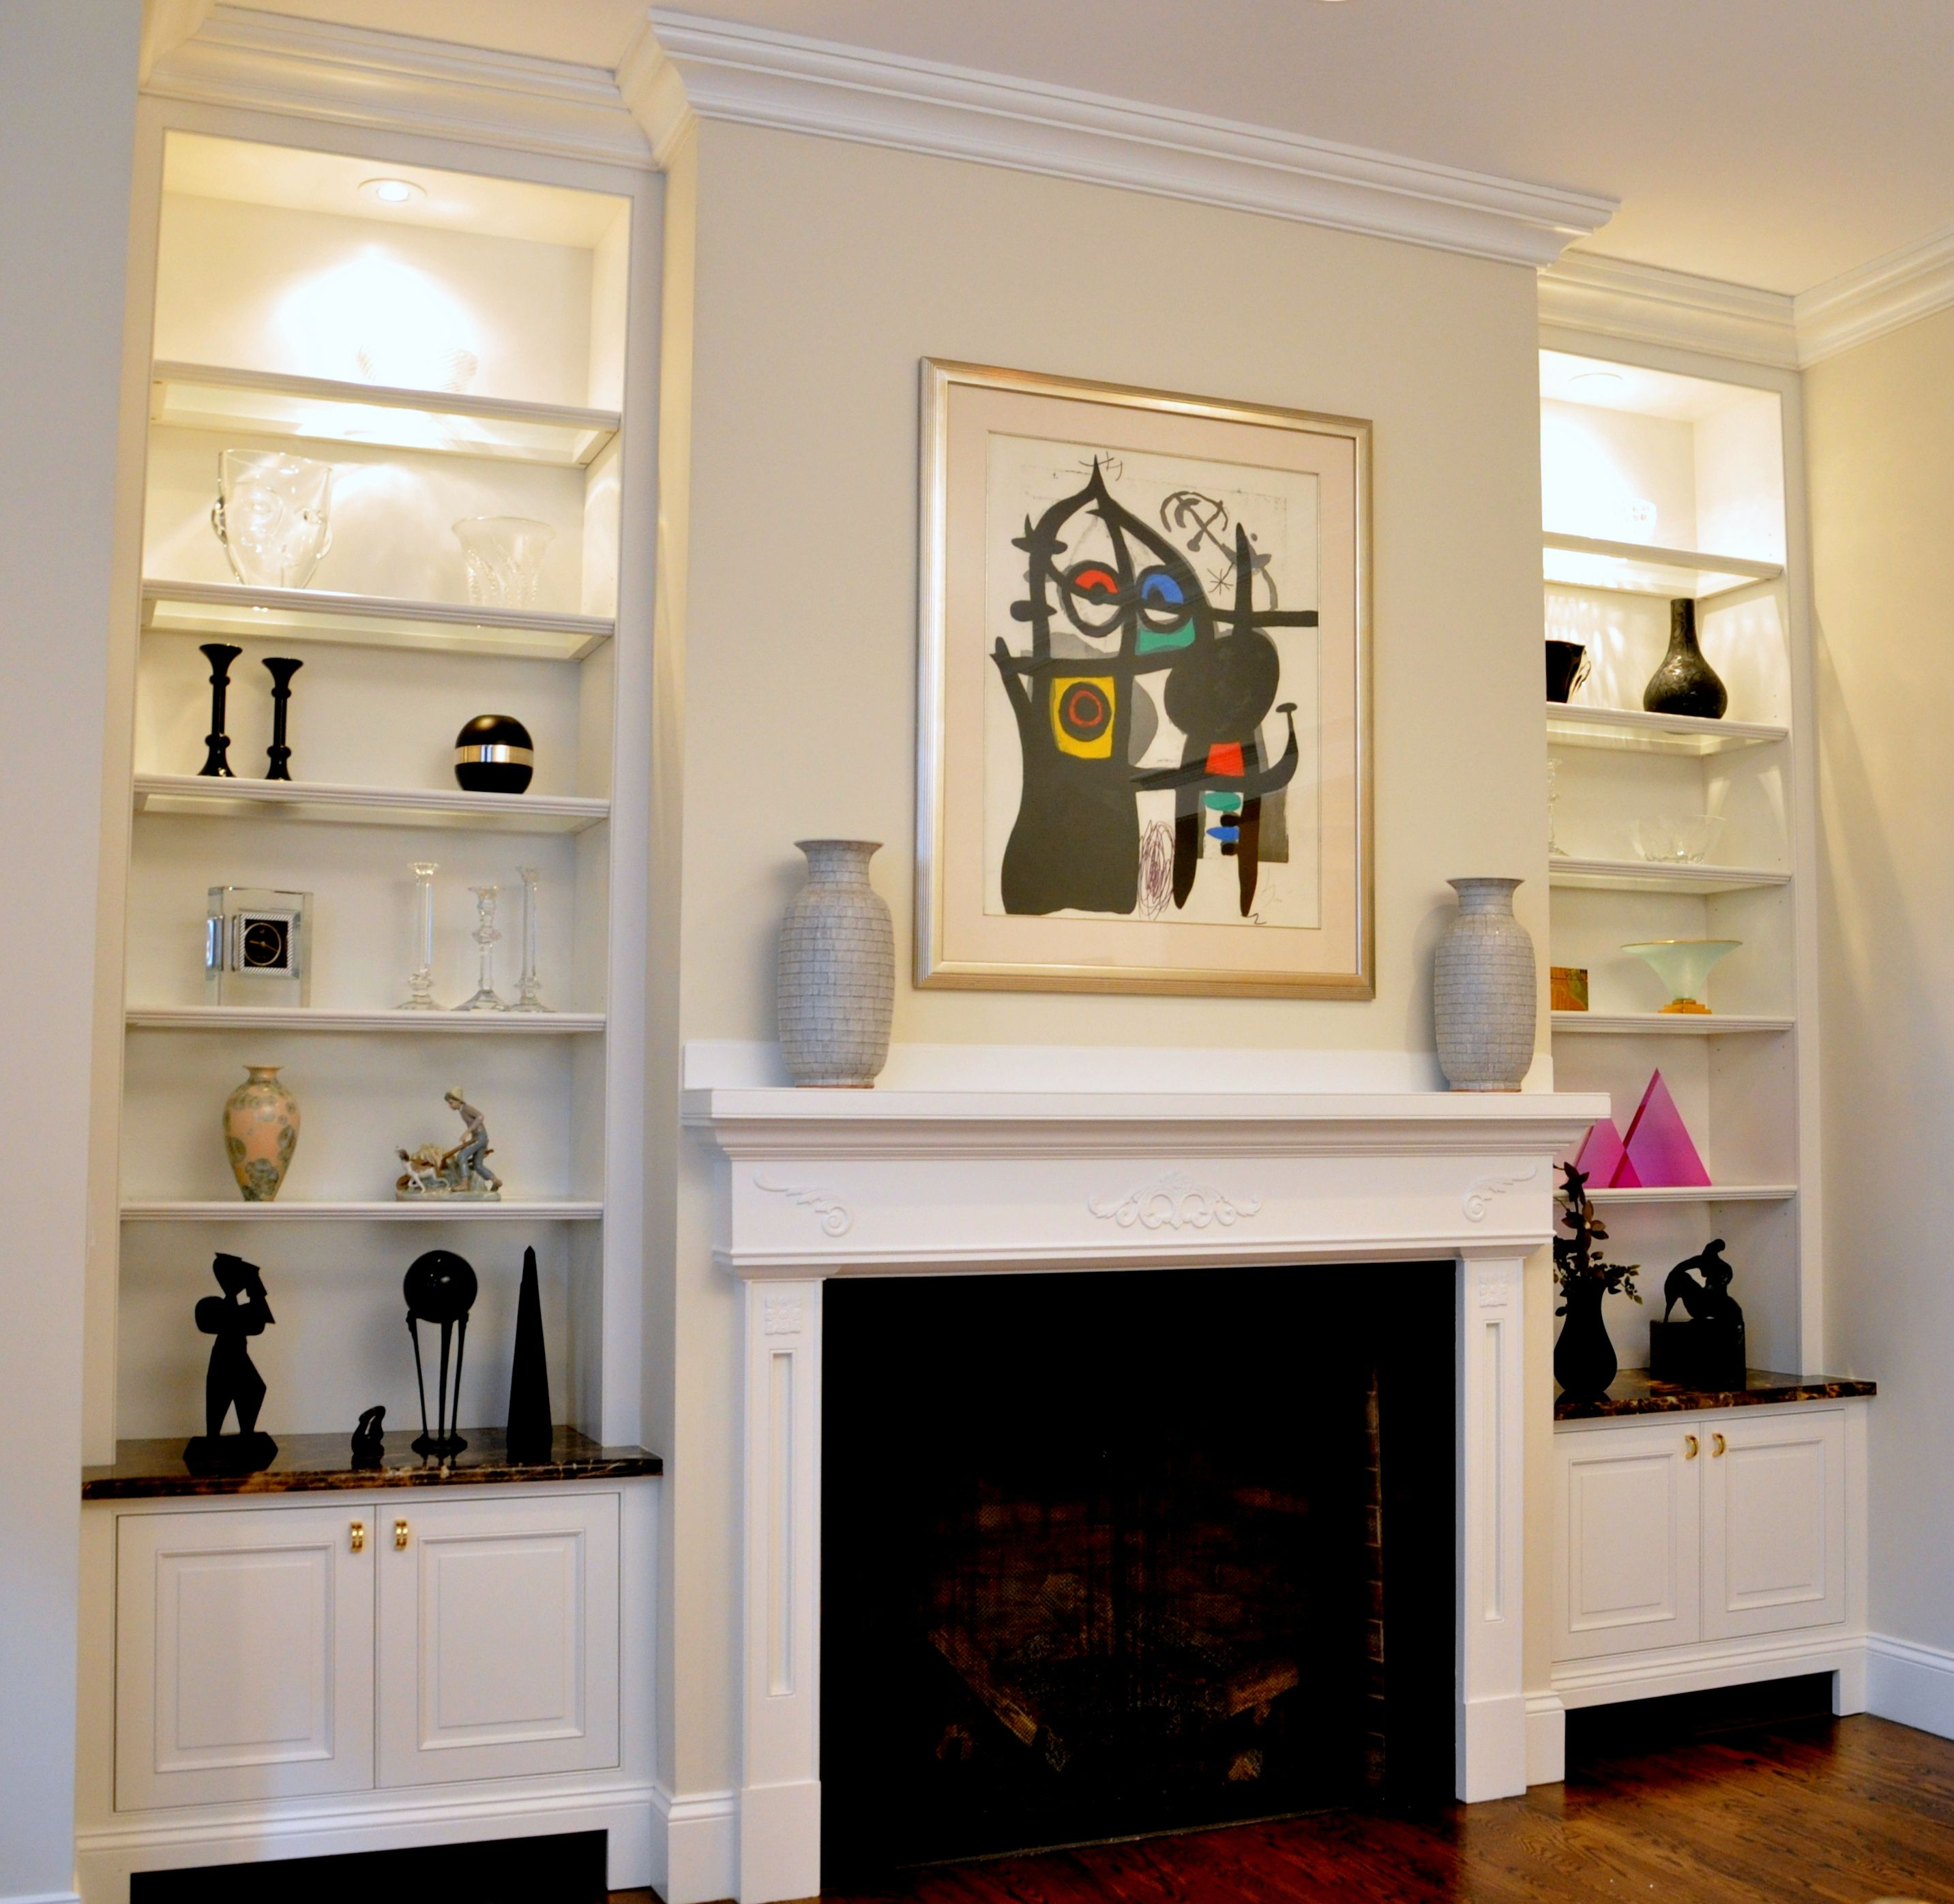 Room These cabinets flanking a fireplace provide